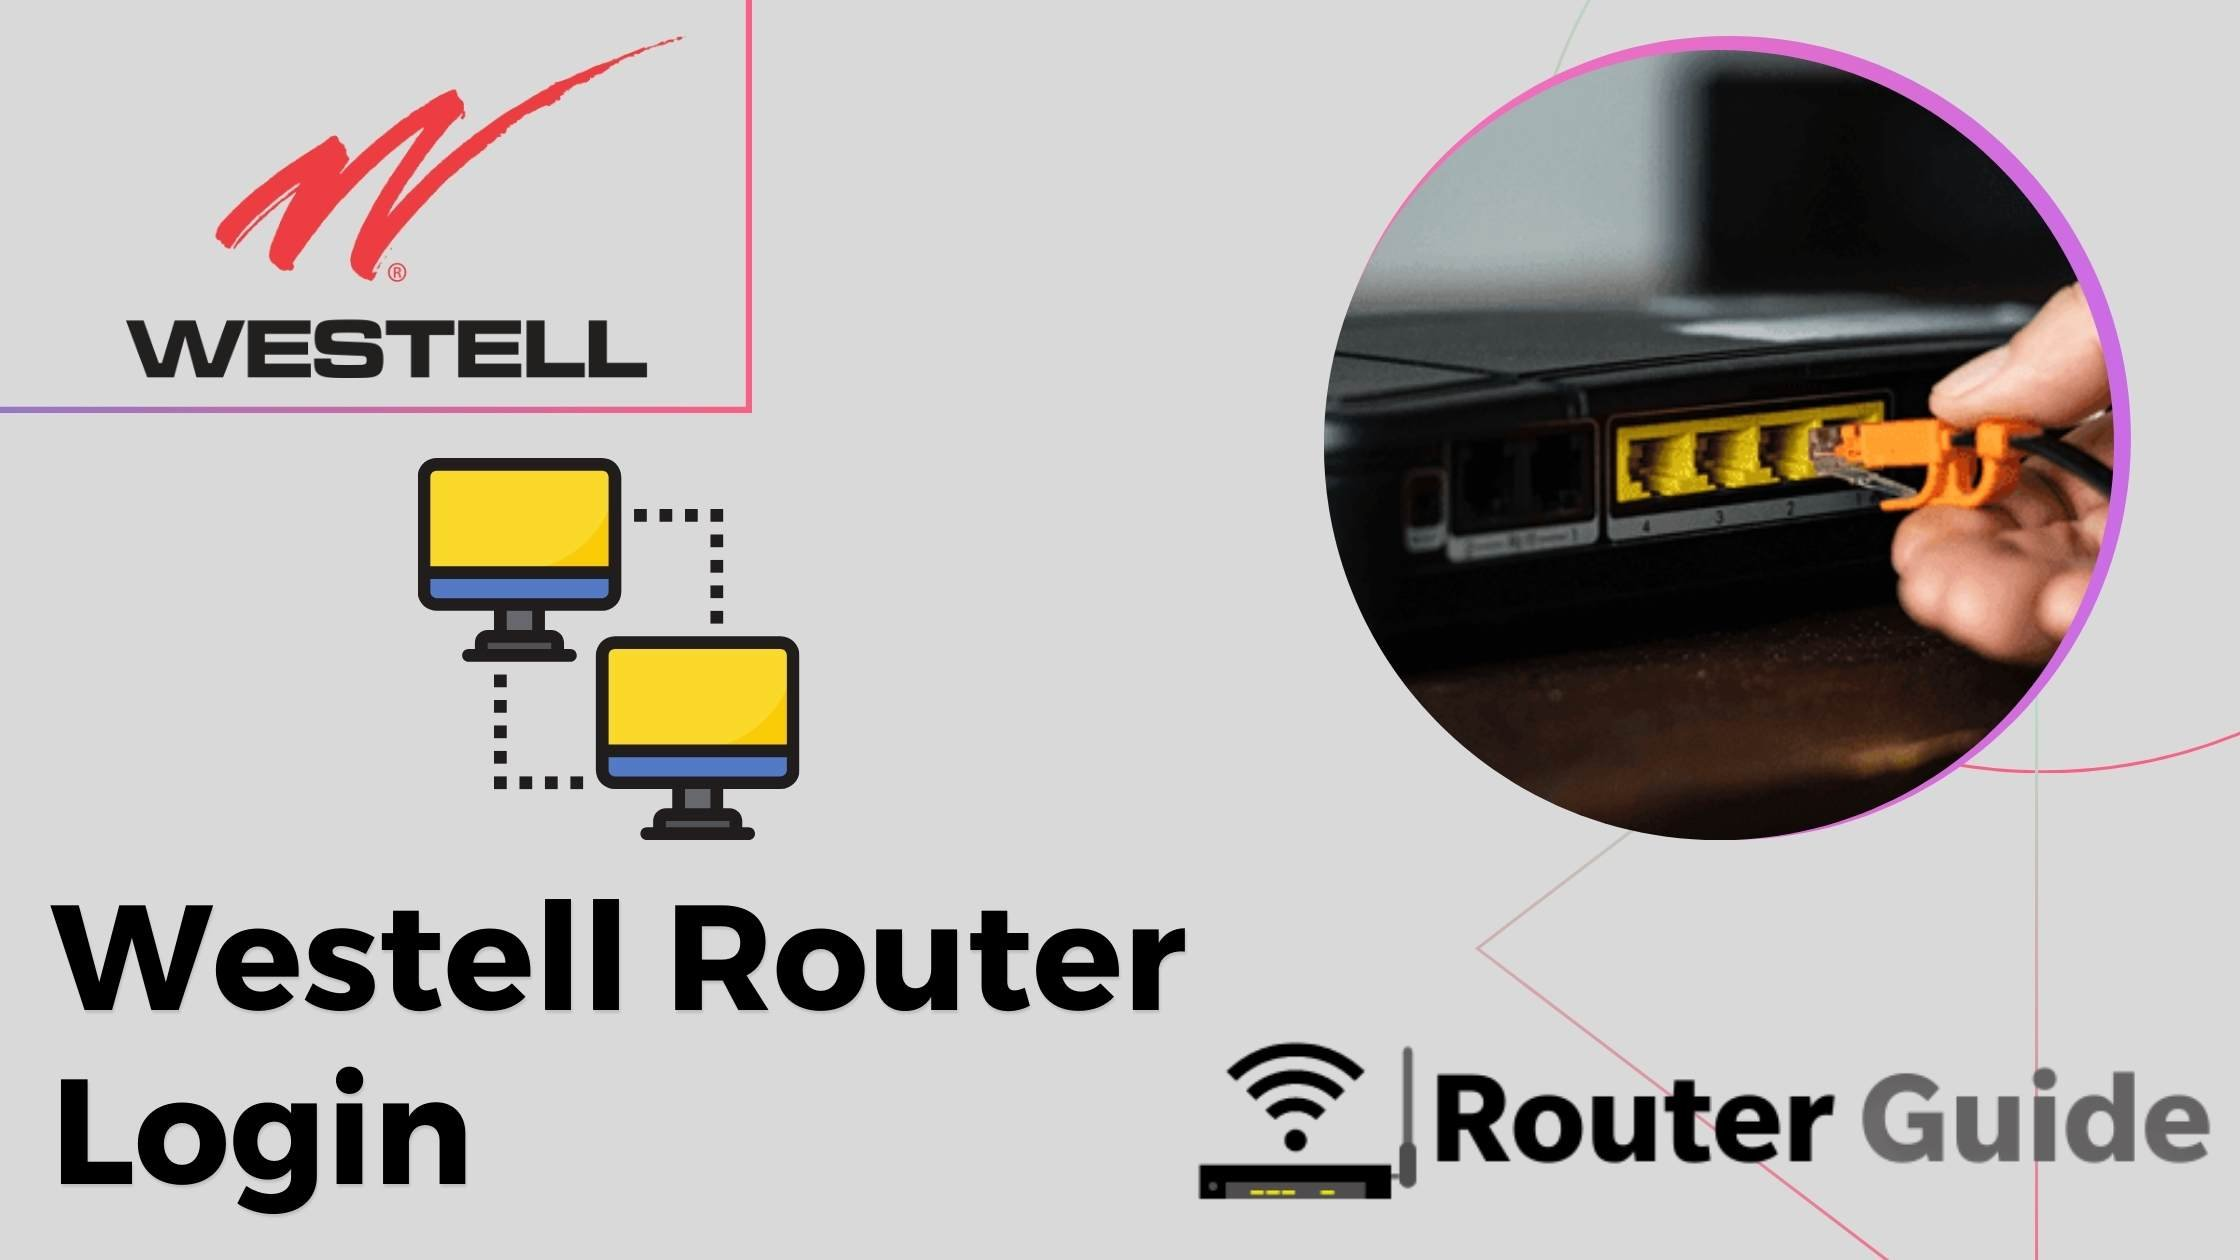 Westell Router Login